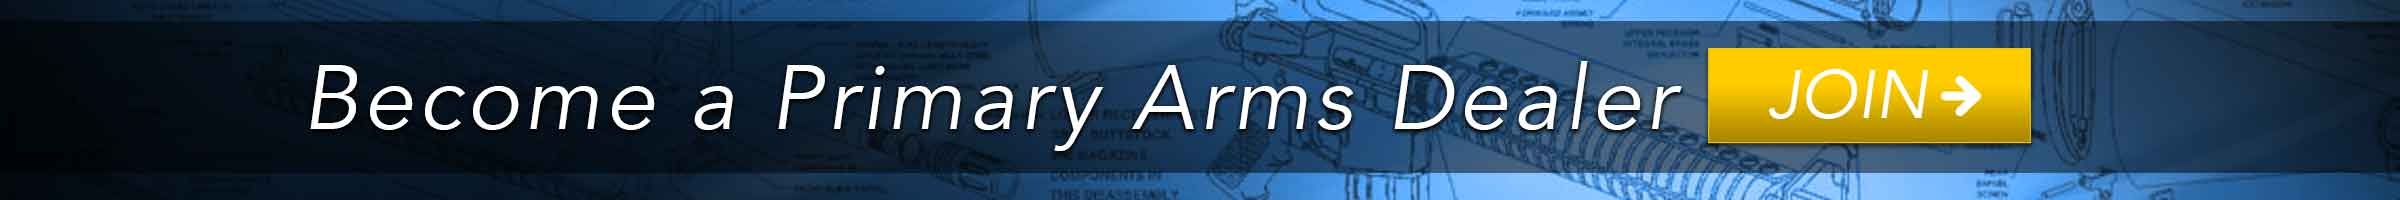 Home Banner Become a Primary Arms Dealer